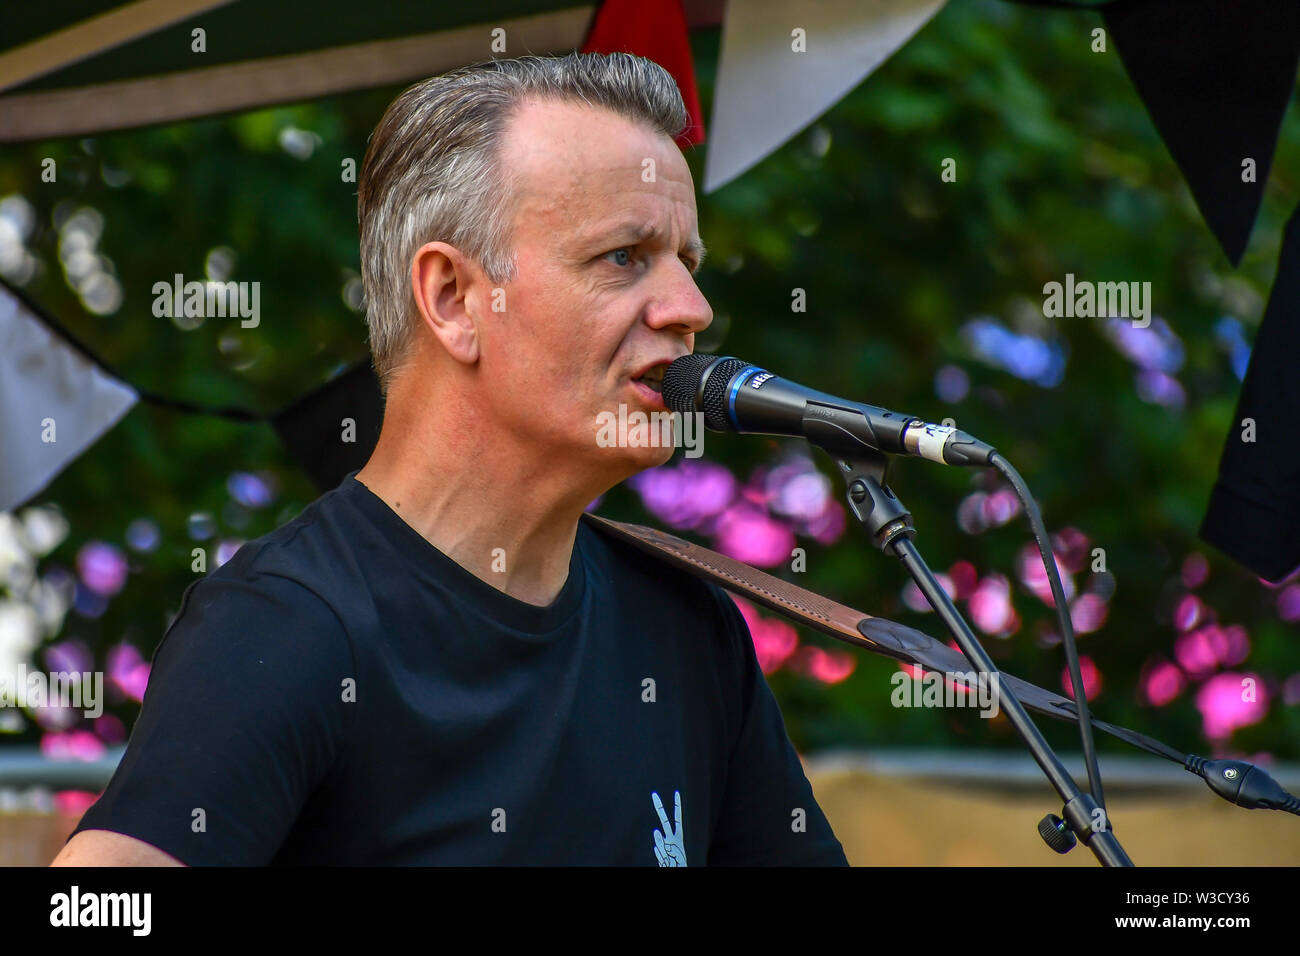 London, UK. 14th July 2019. Jamies Freeman performs at the Food Village at Kew the Music 2019 on 14 July 2019, London, UK. Credit: Picture Capital/Alamy Live News - Stock Image